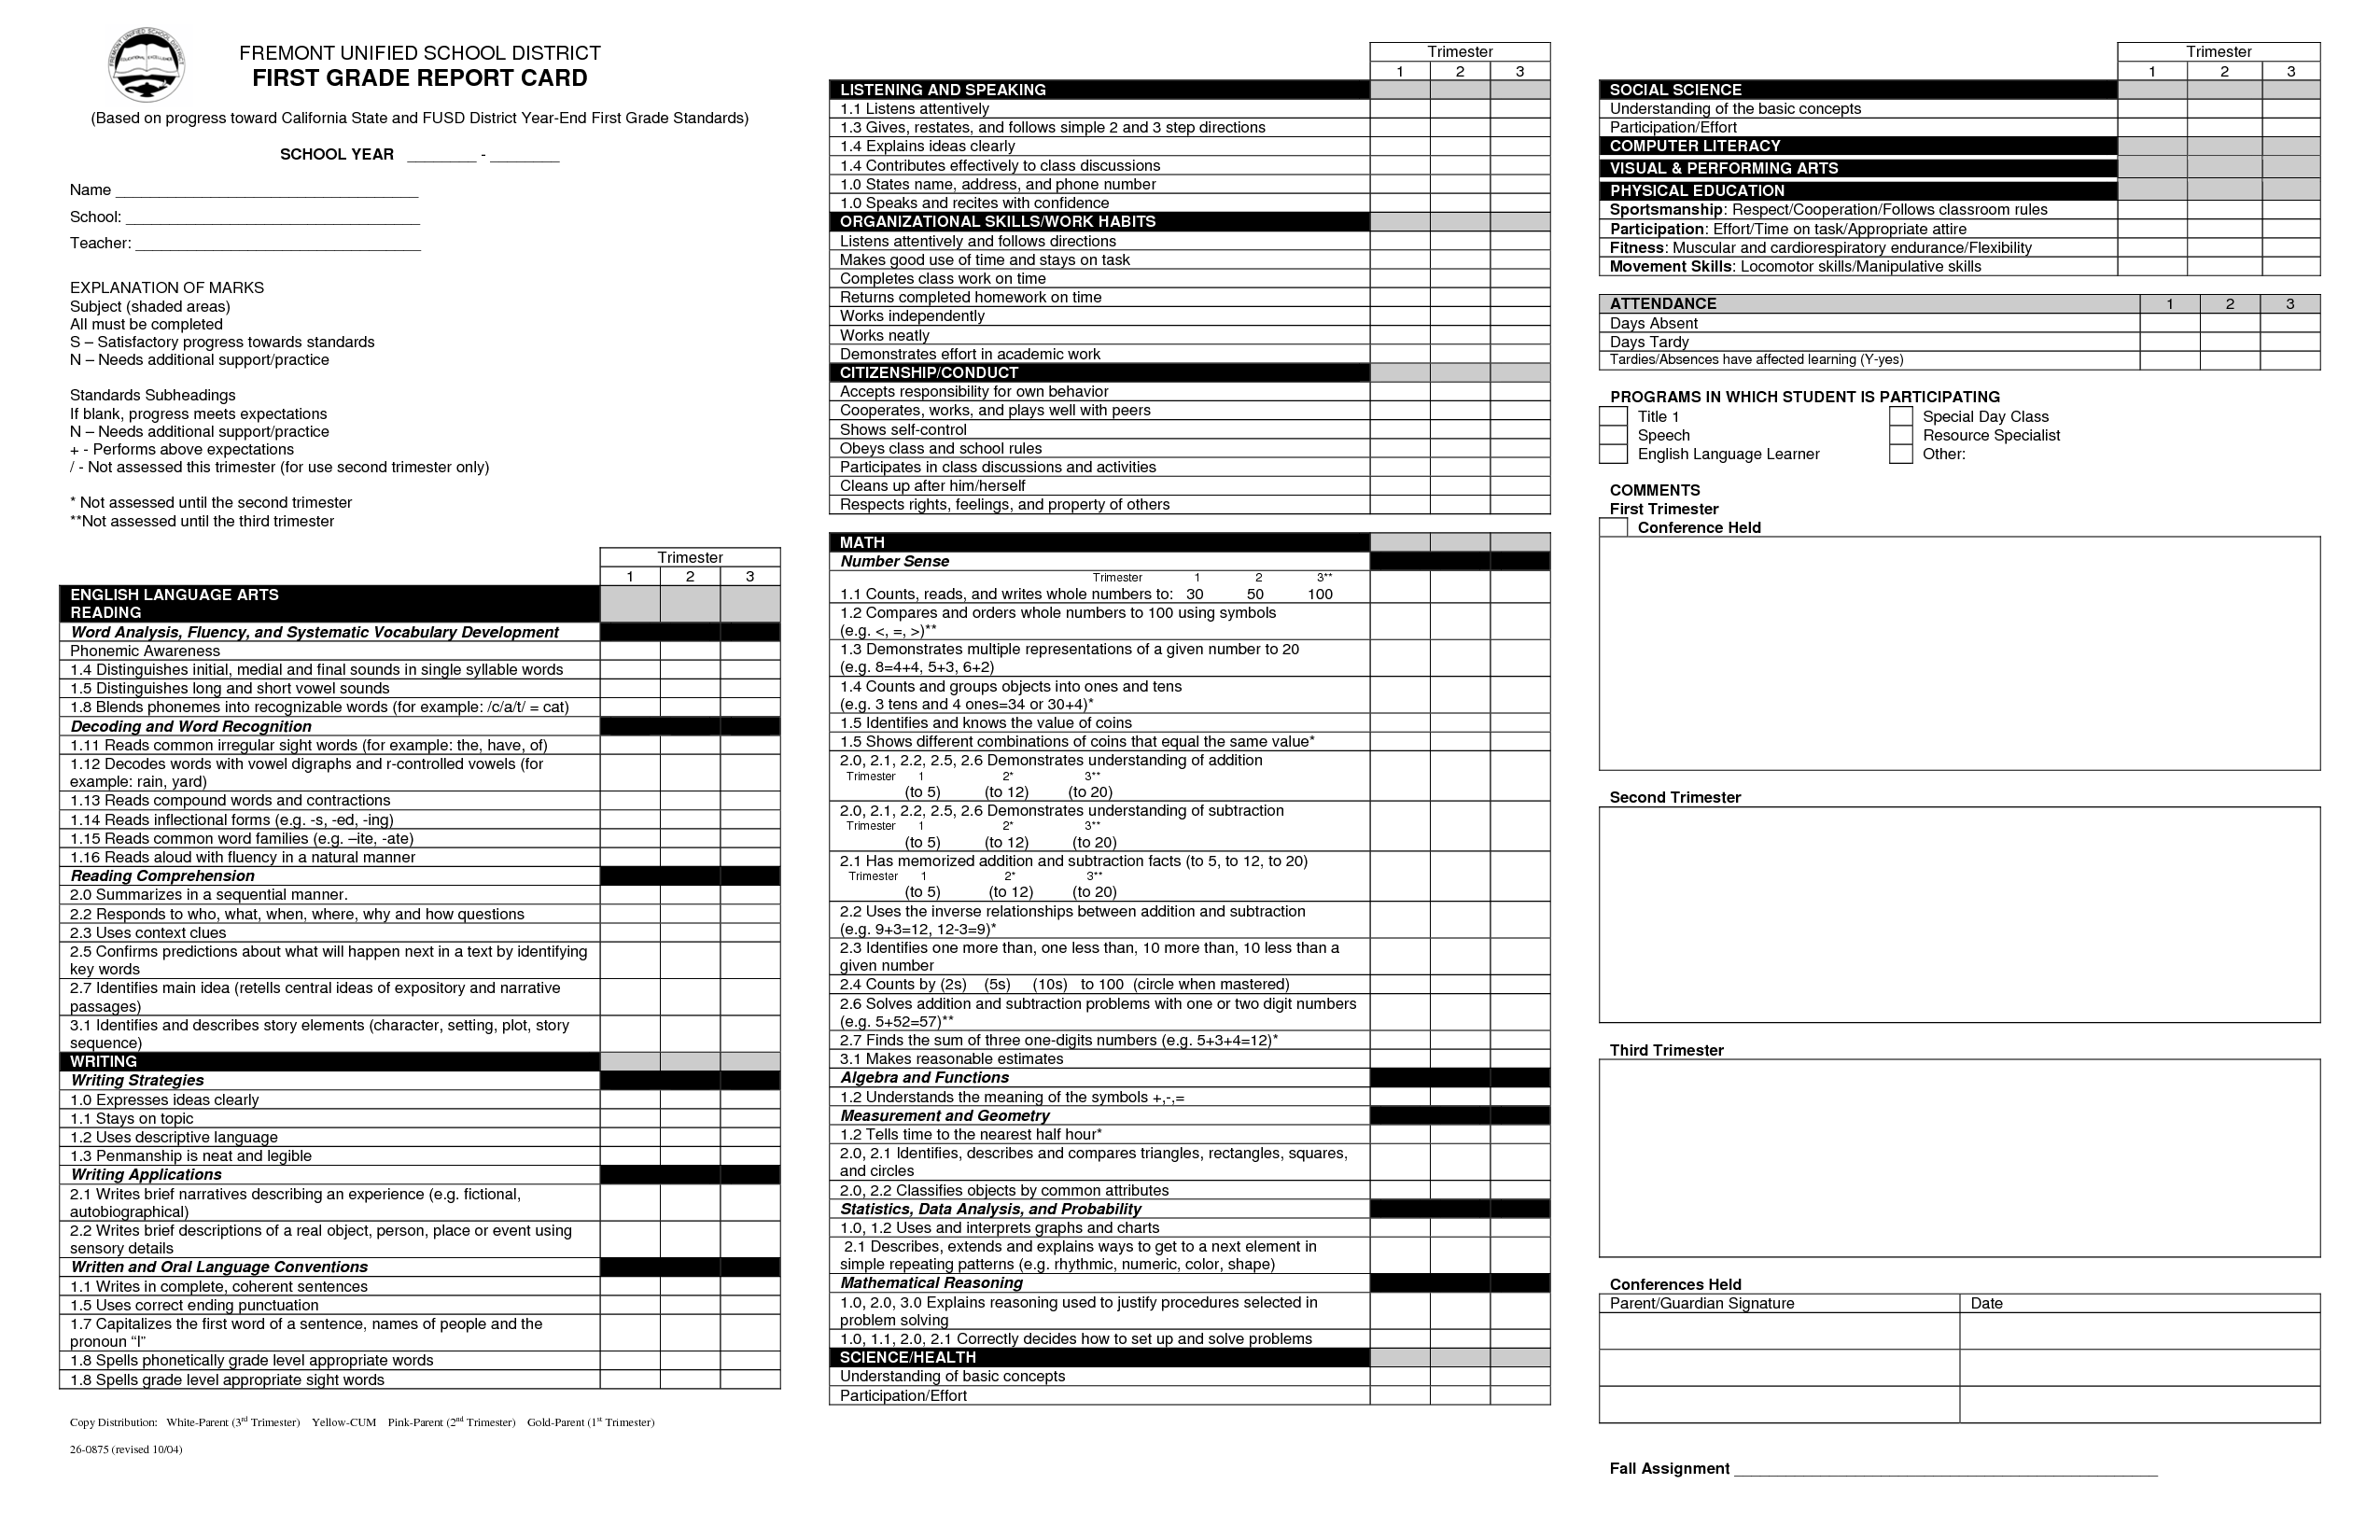 First Grade Report Card Template